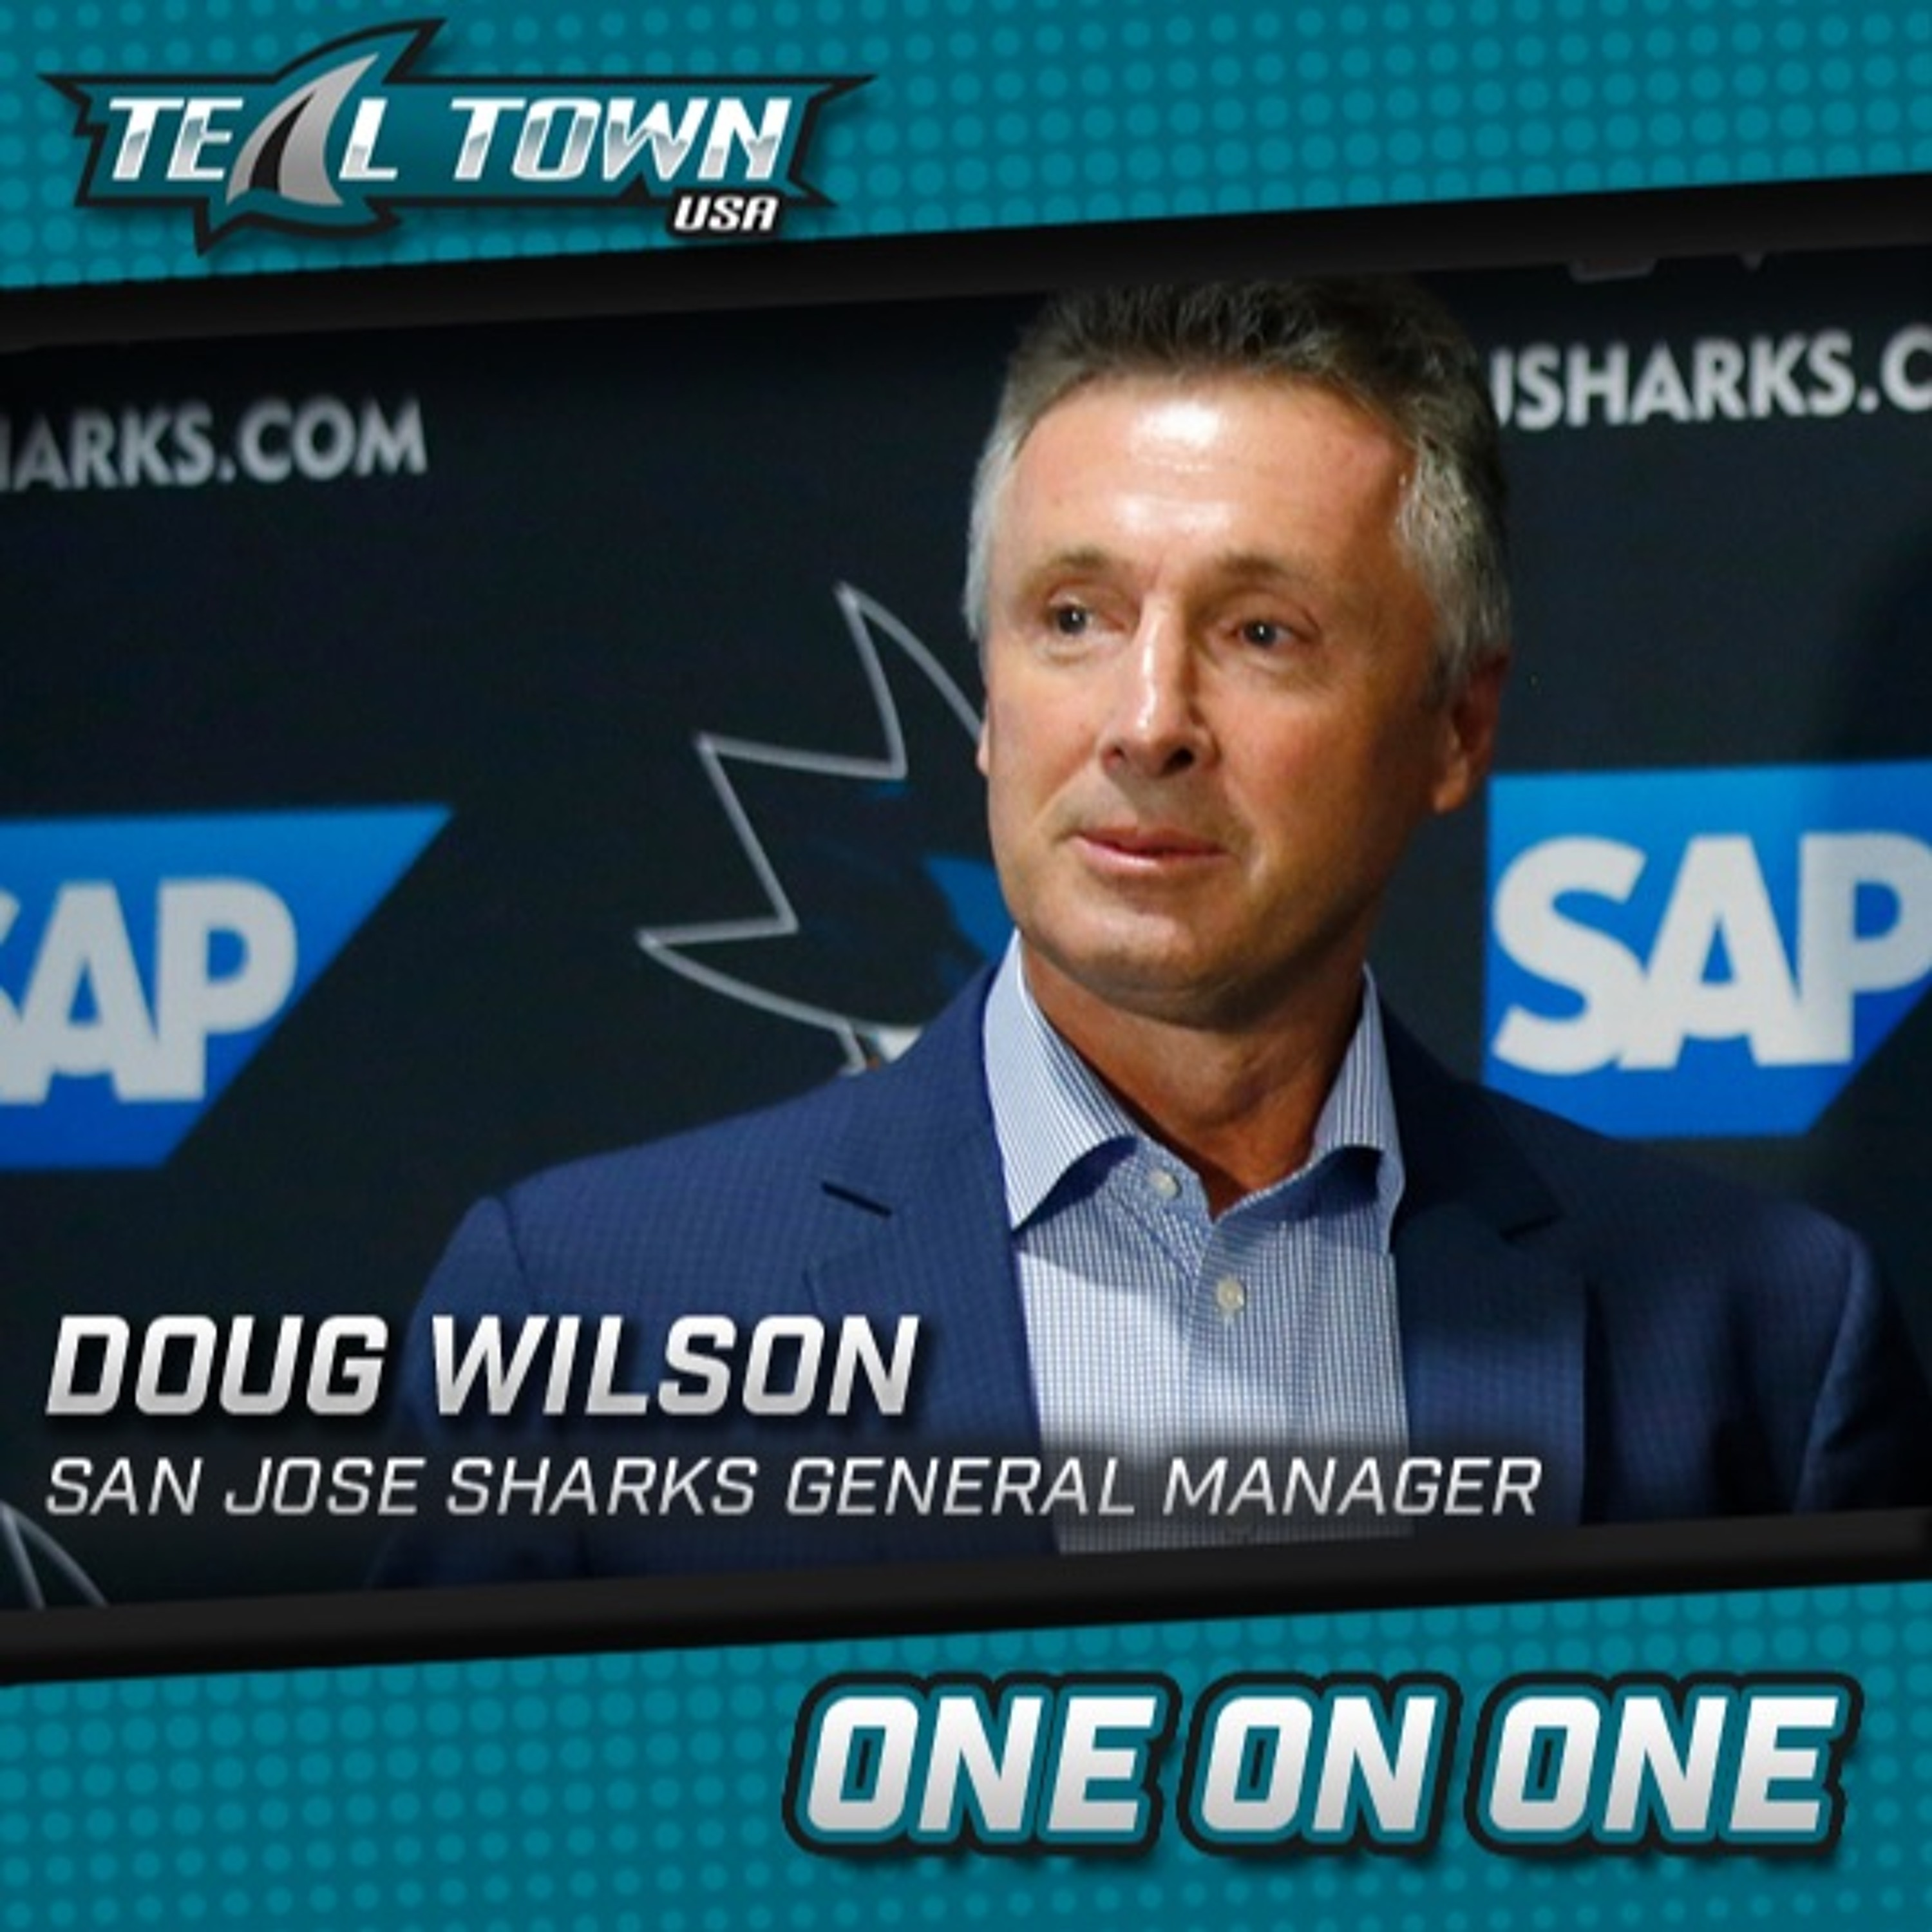 One on One with Doug Wilson - San Jose Sharks General Manager